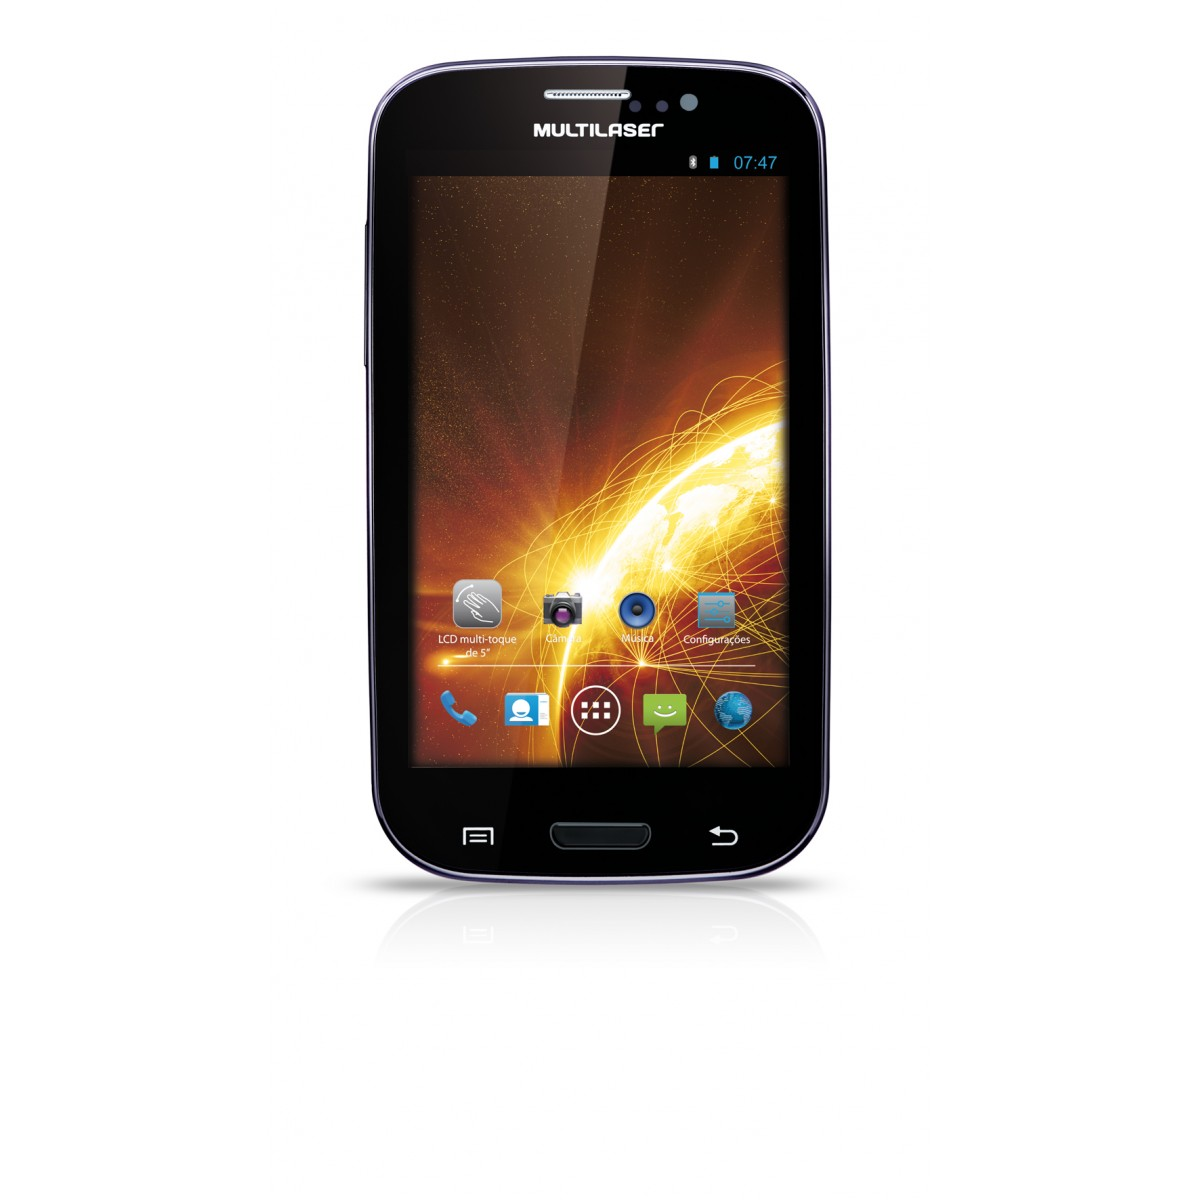 Smartphone M5 NB049 - Android 4.1, Processador Dual Core, Camera 5MP, Dual Chip, Wi-Fi, 3G, Preto